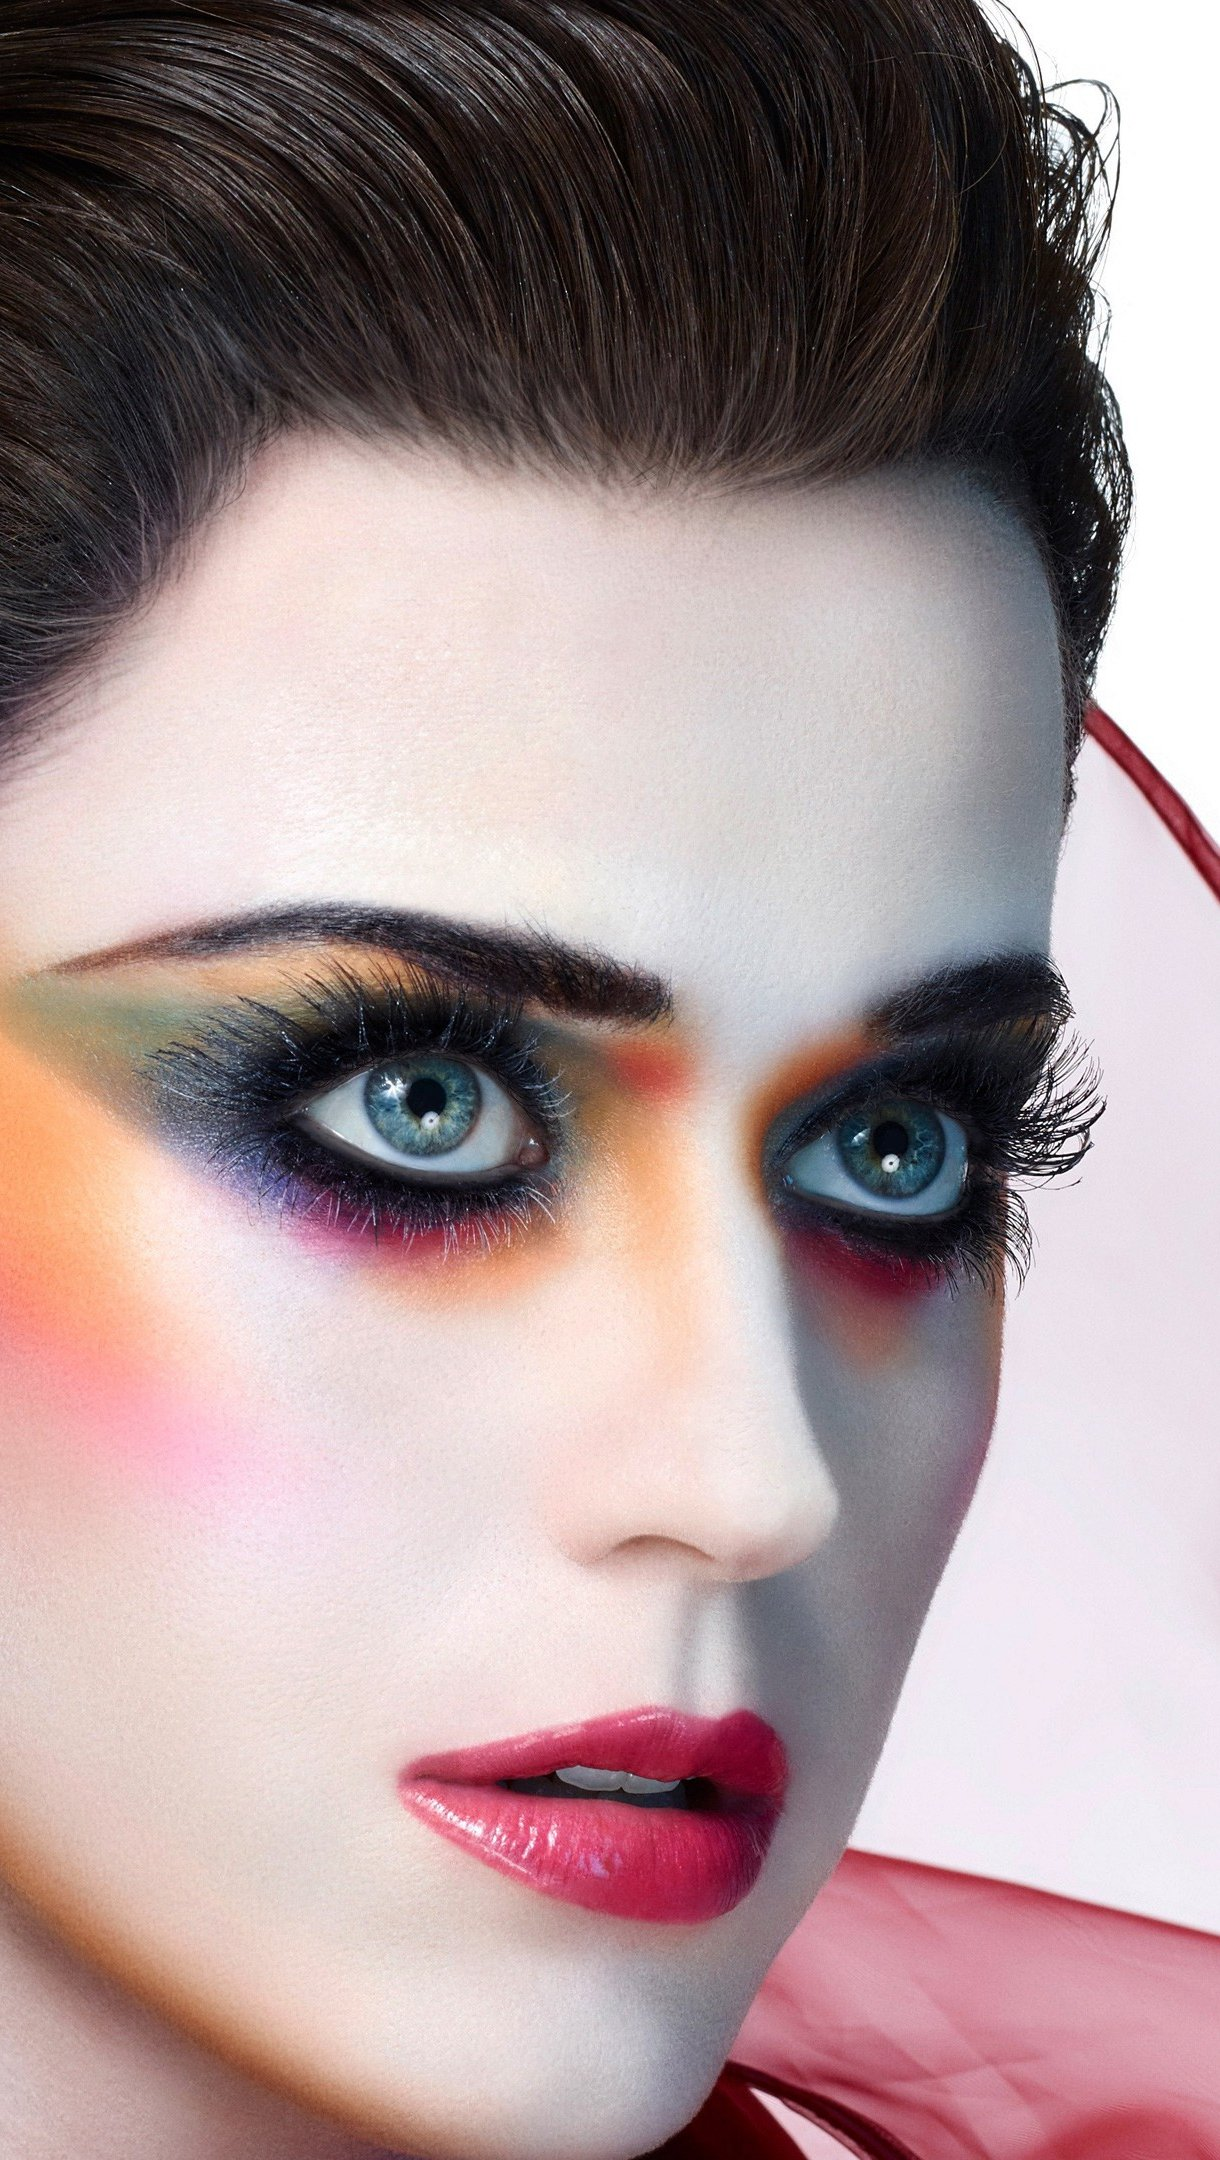 Wallpaper Katy Perry with makeup Vertical